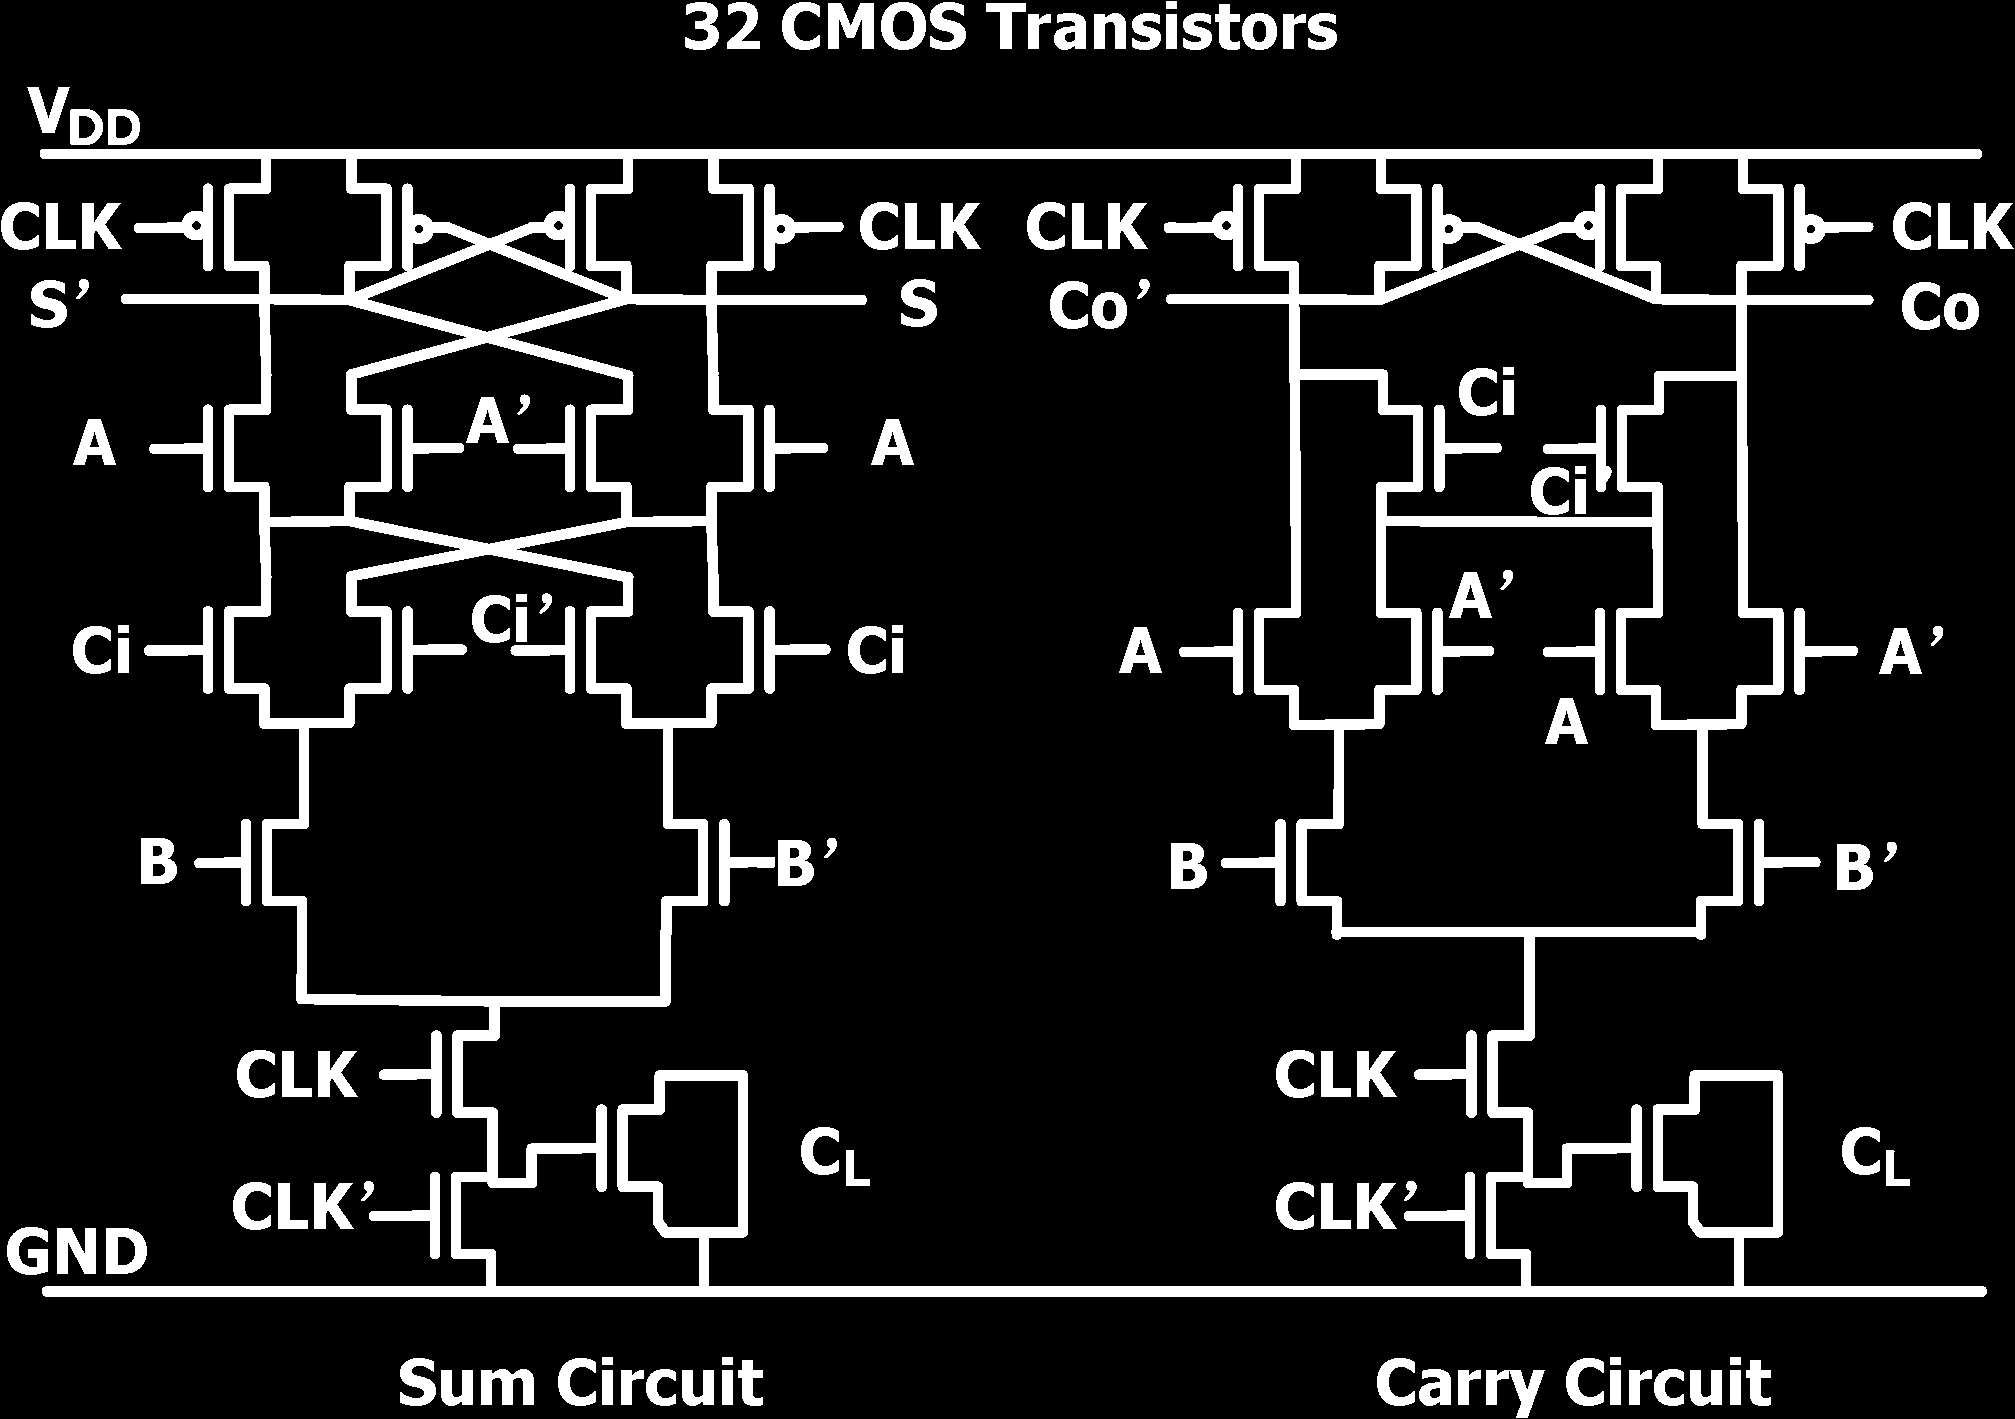 Evolutionary Device Scaling Of Cmos Technology To Pdf Show Your 1bit Adder Circuit Ta Ren And Markovi True Energy Performance Analysis The Mtj Based Logic